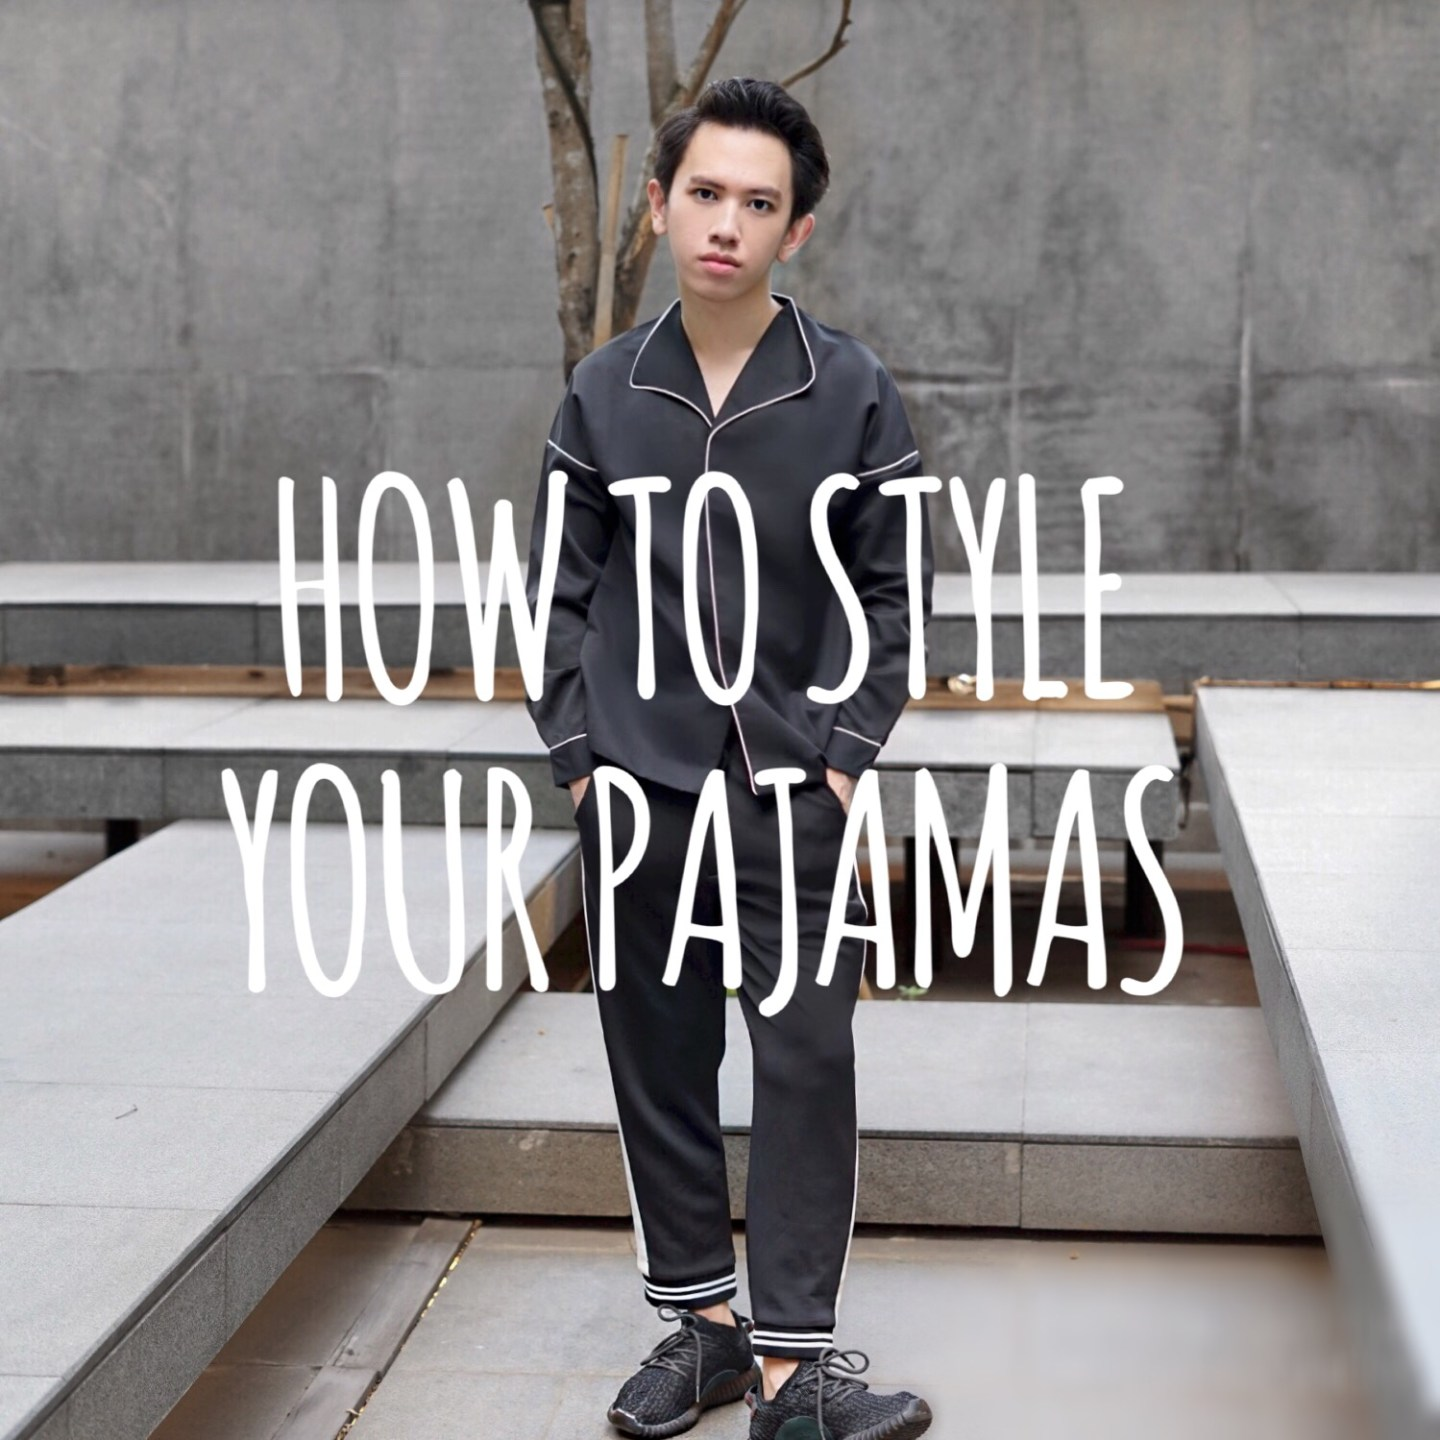 HOW TO STYLE YOUR PAJAMAS